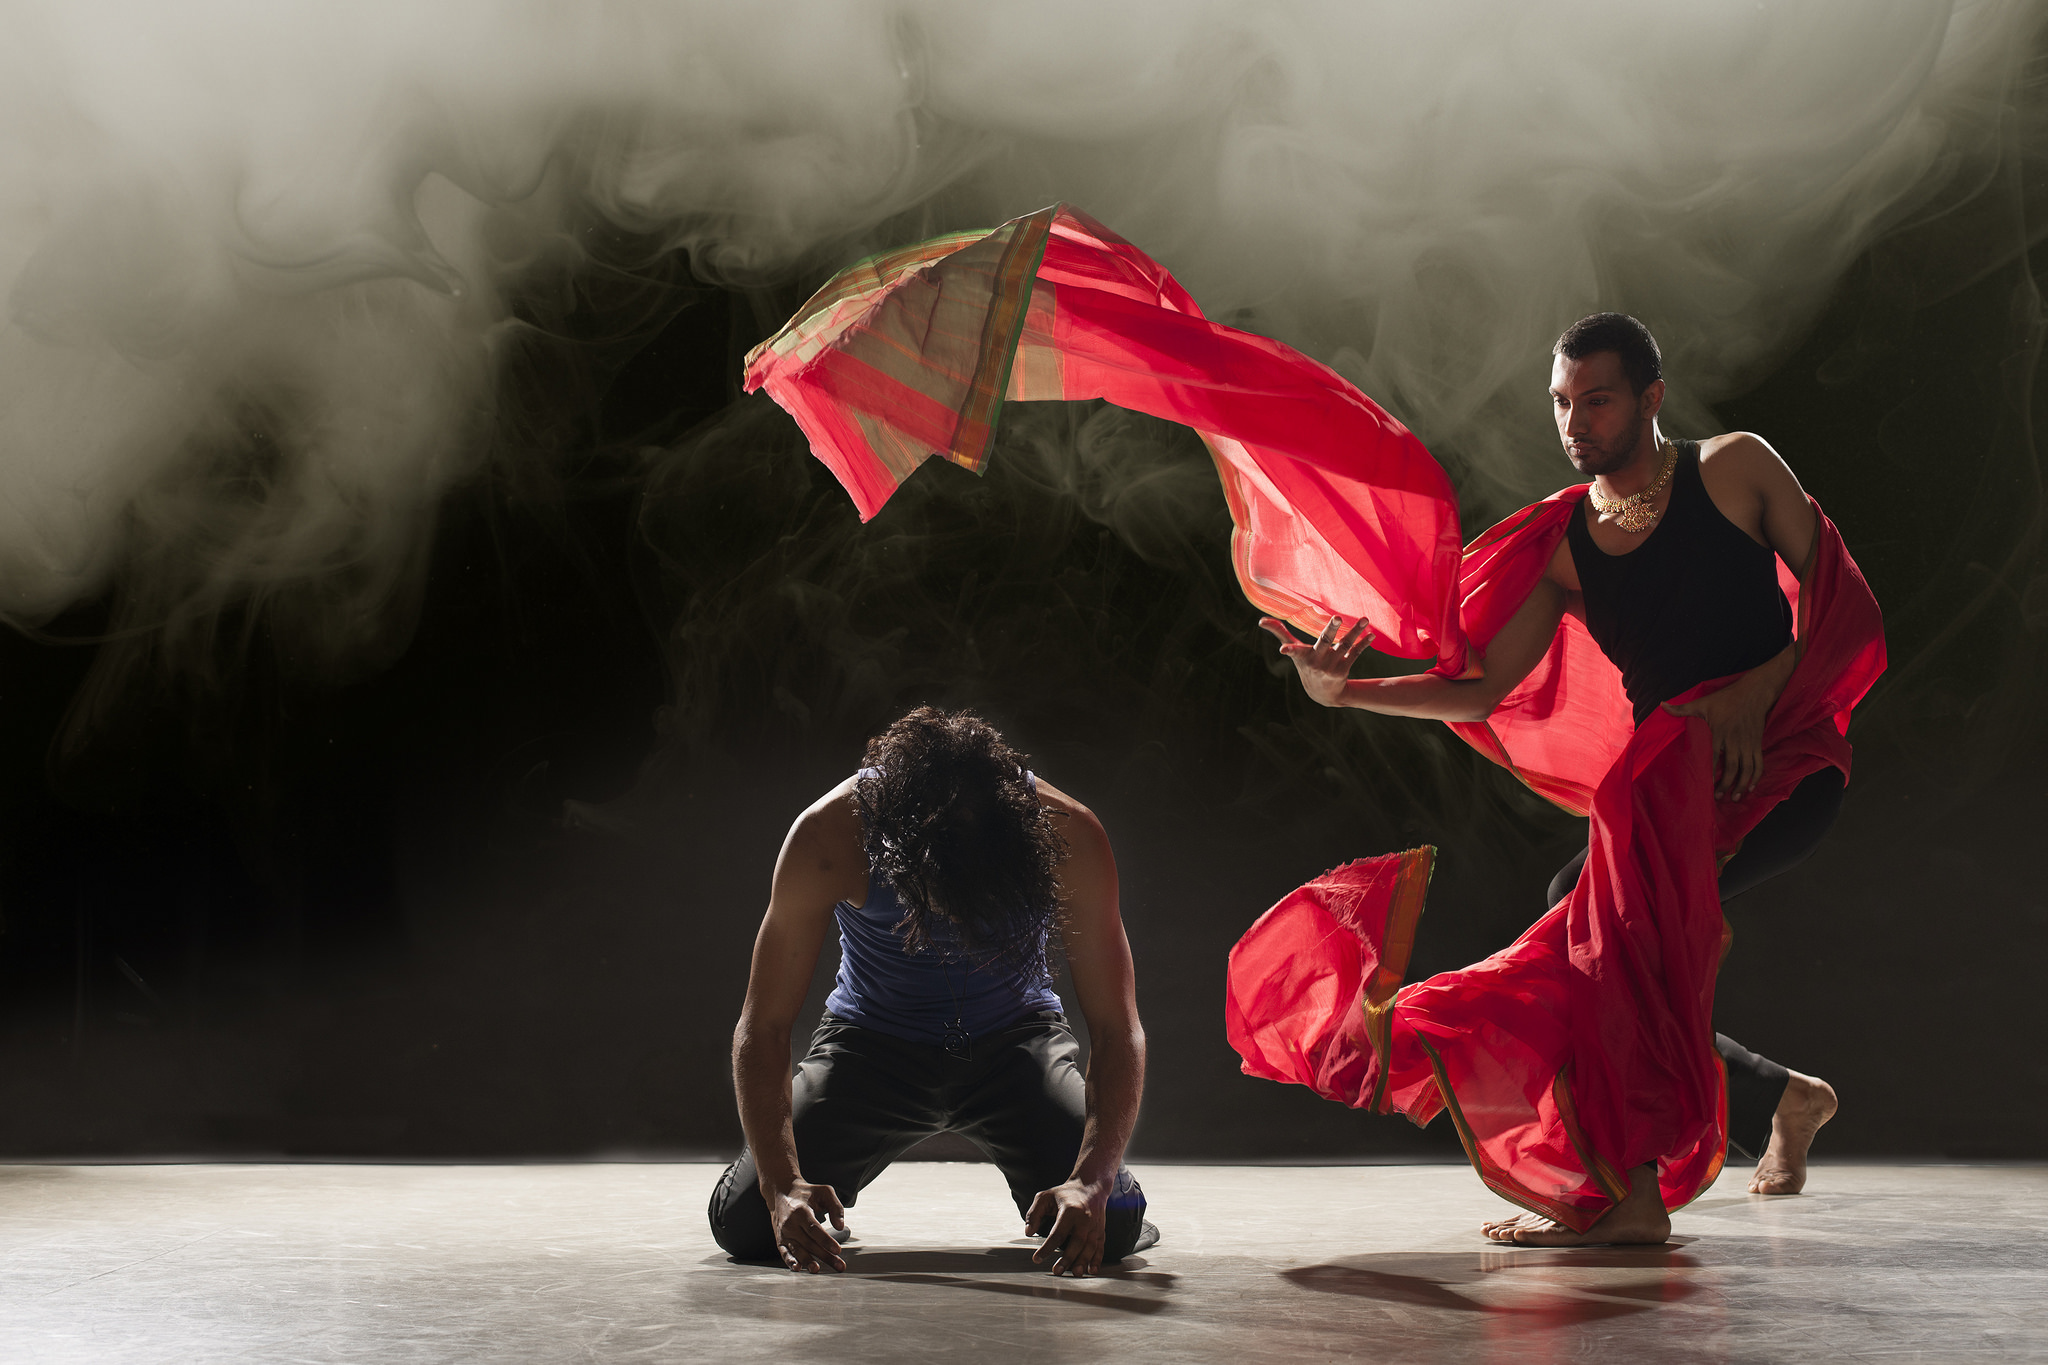 A dancer on his knees looks at the floor, while another dancer moves around him, a flowing red cloth blowing in the air within his grasp.